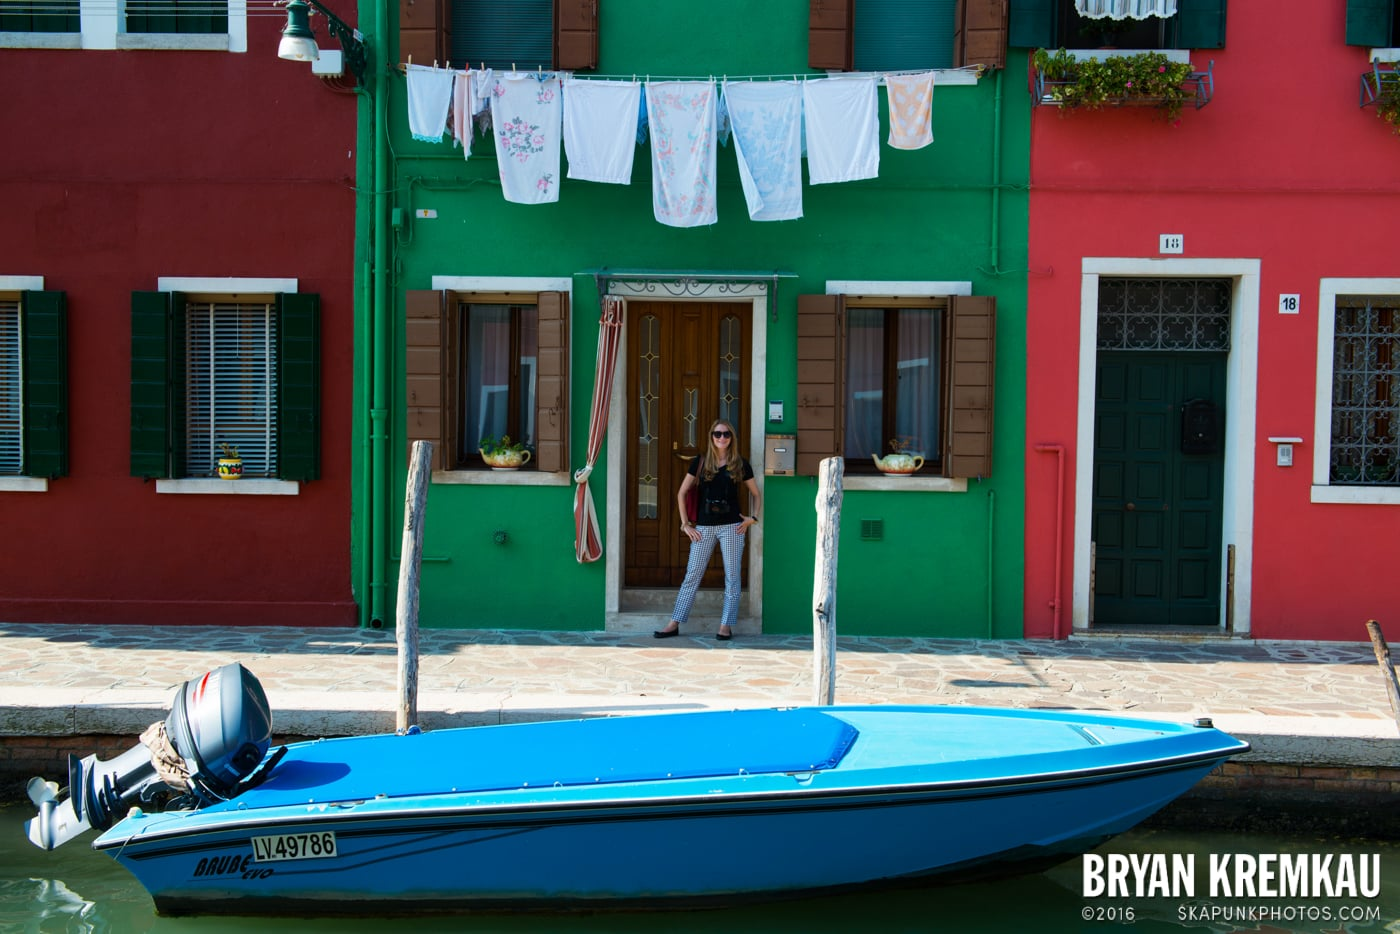 Italy Vacation - Day 6: Murano, Burano, Venice - 9.14.13 (24)